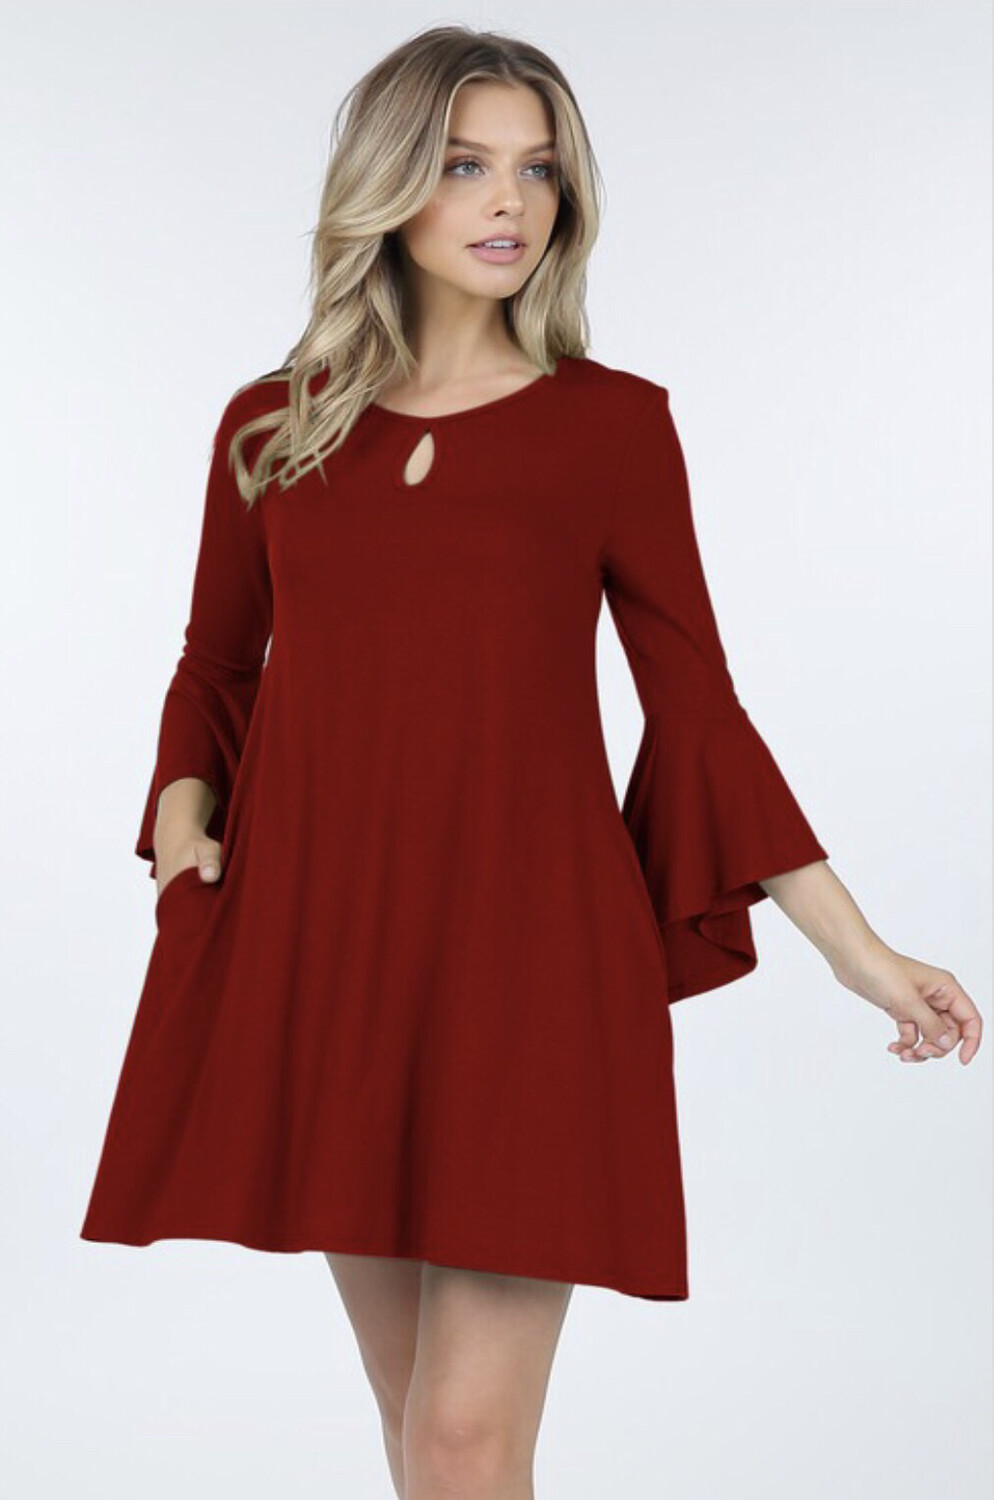 Dress Ruby Red Bell Sleeve Keyhole Stretch Fit Size S M L XL